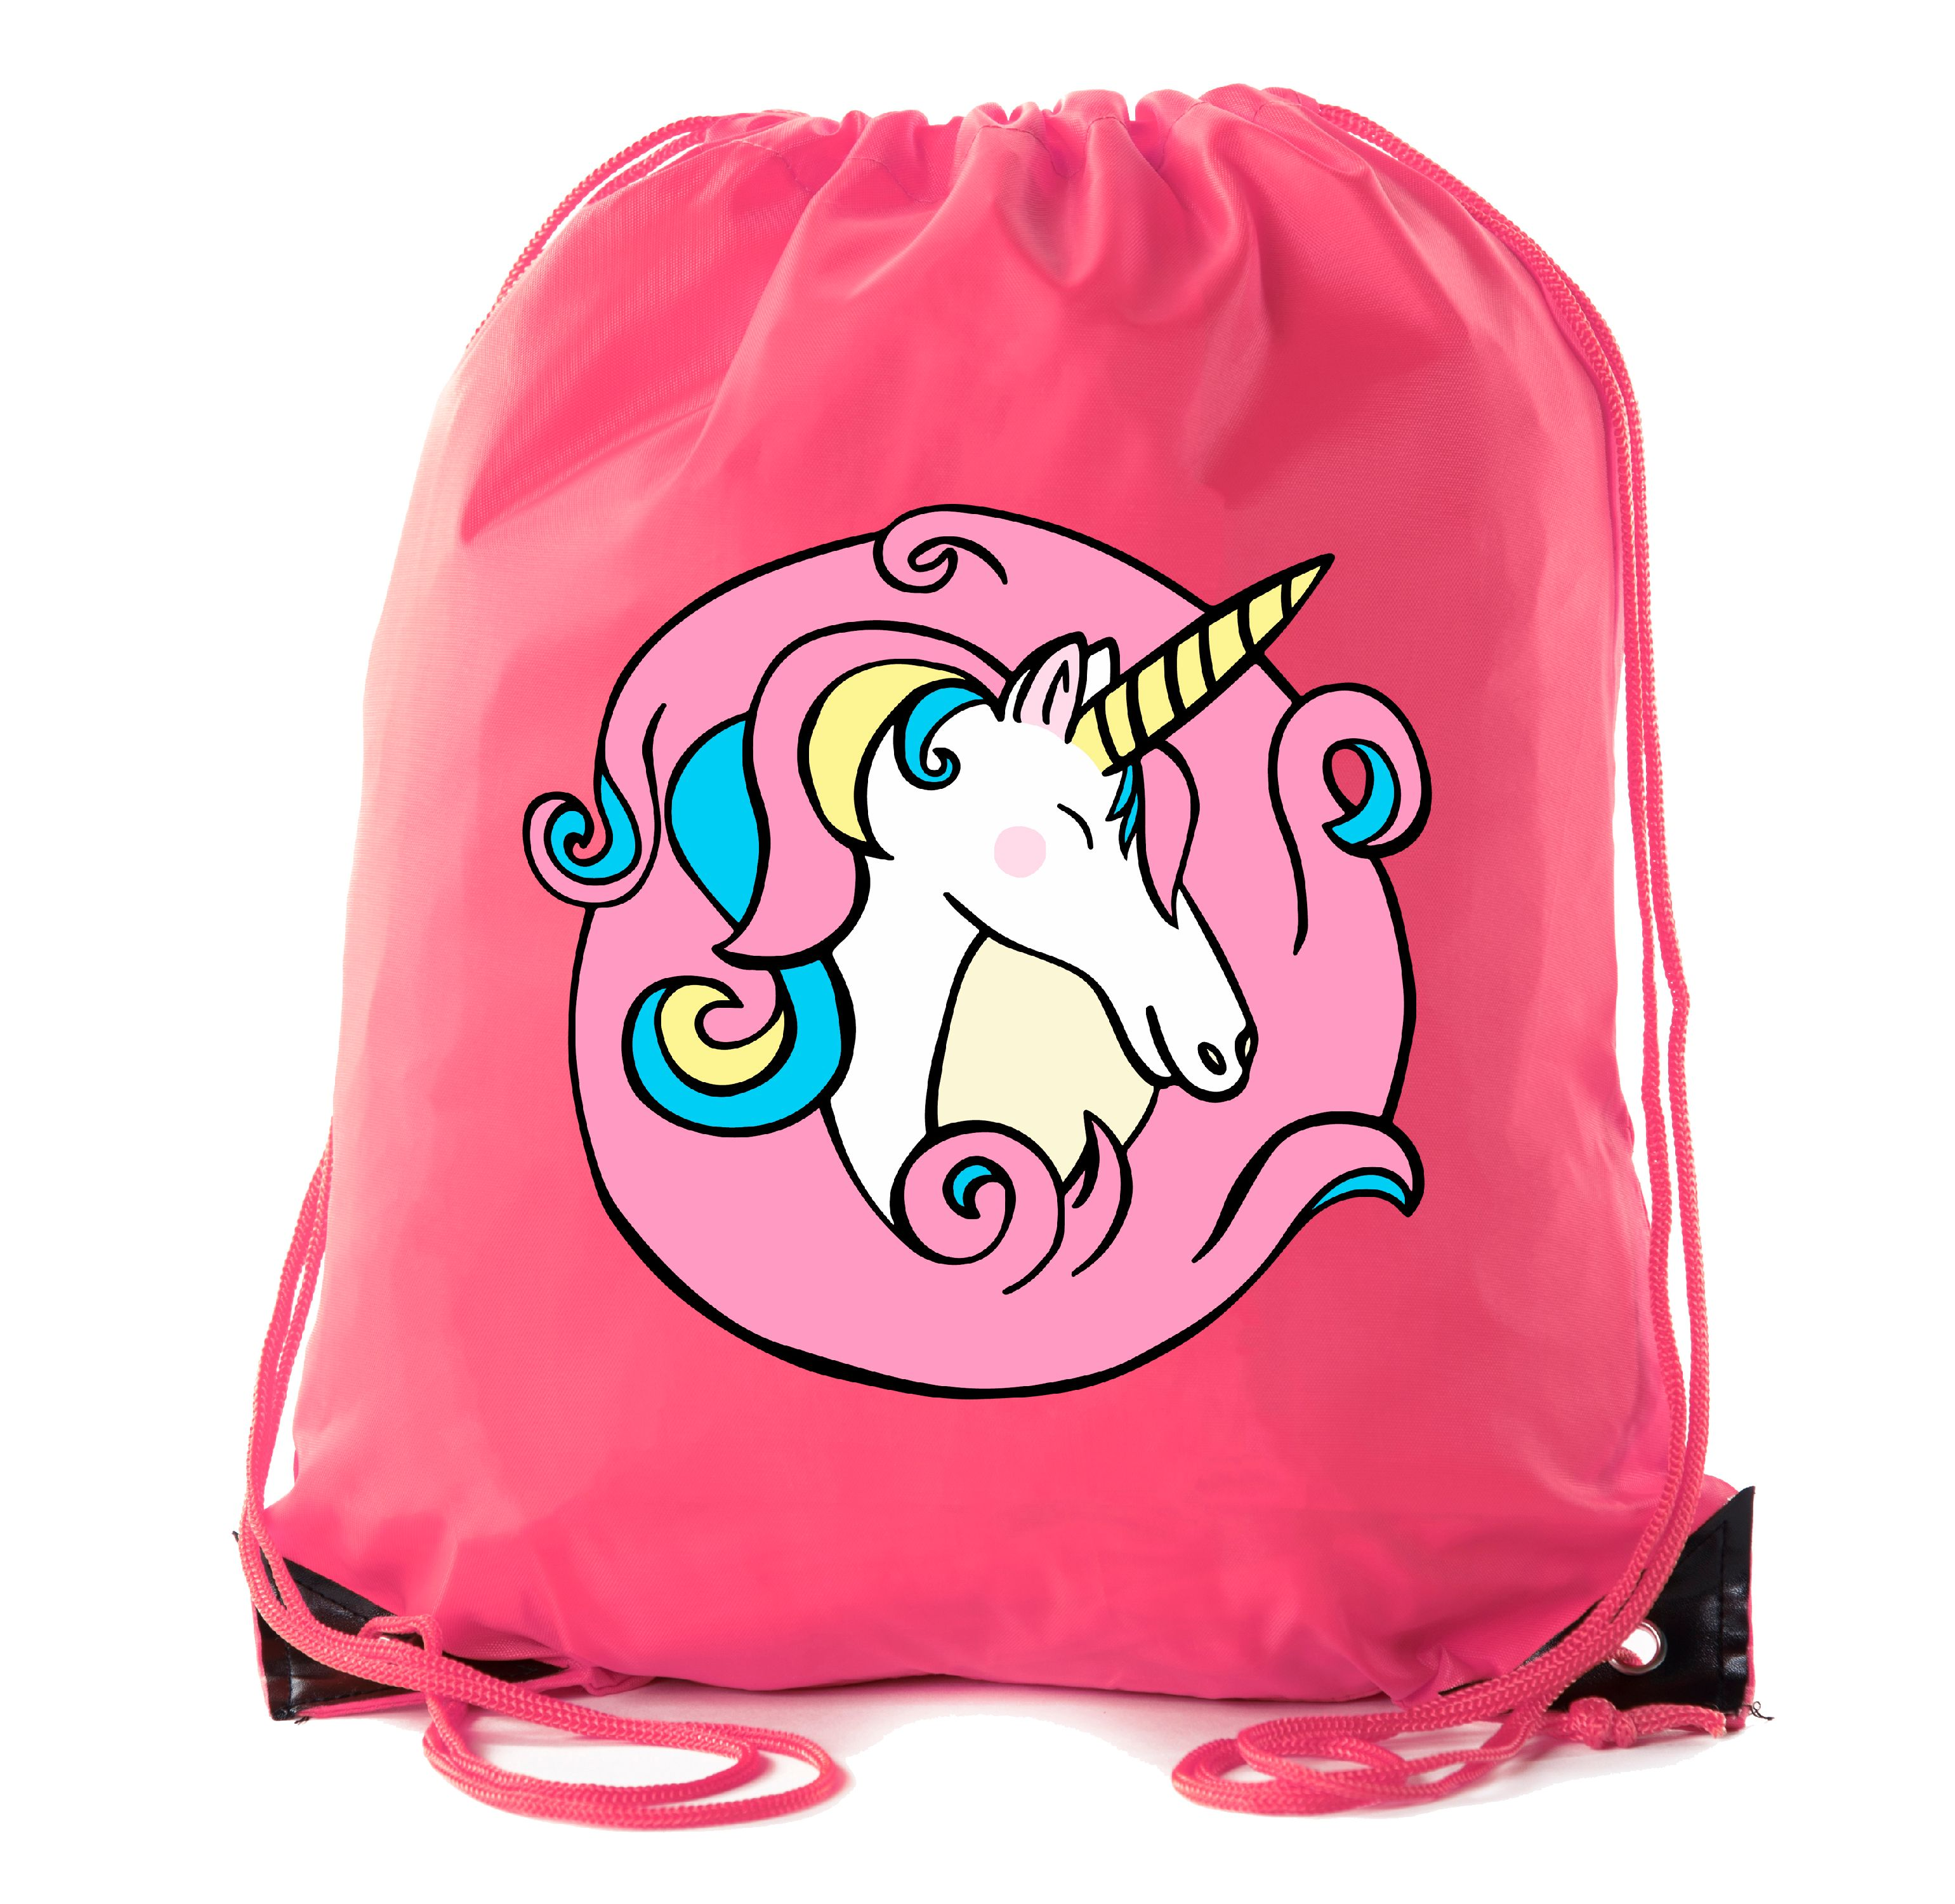 Unicorn Drawstring Bags Unicorn Treat Bags for Birthday Gift Bags & Baby Showers